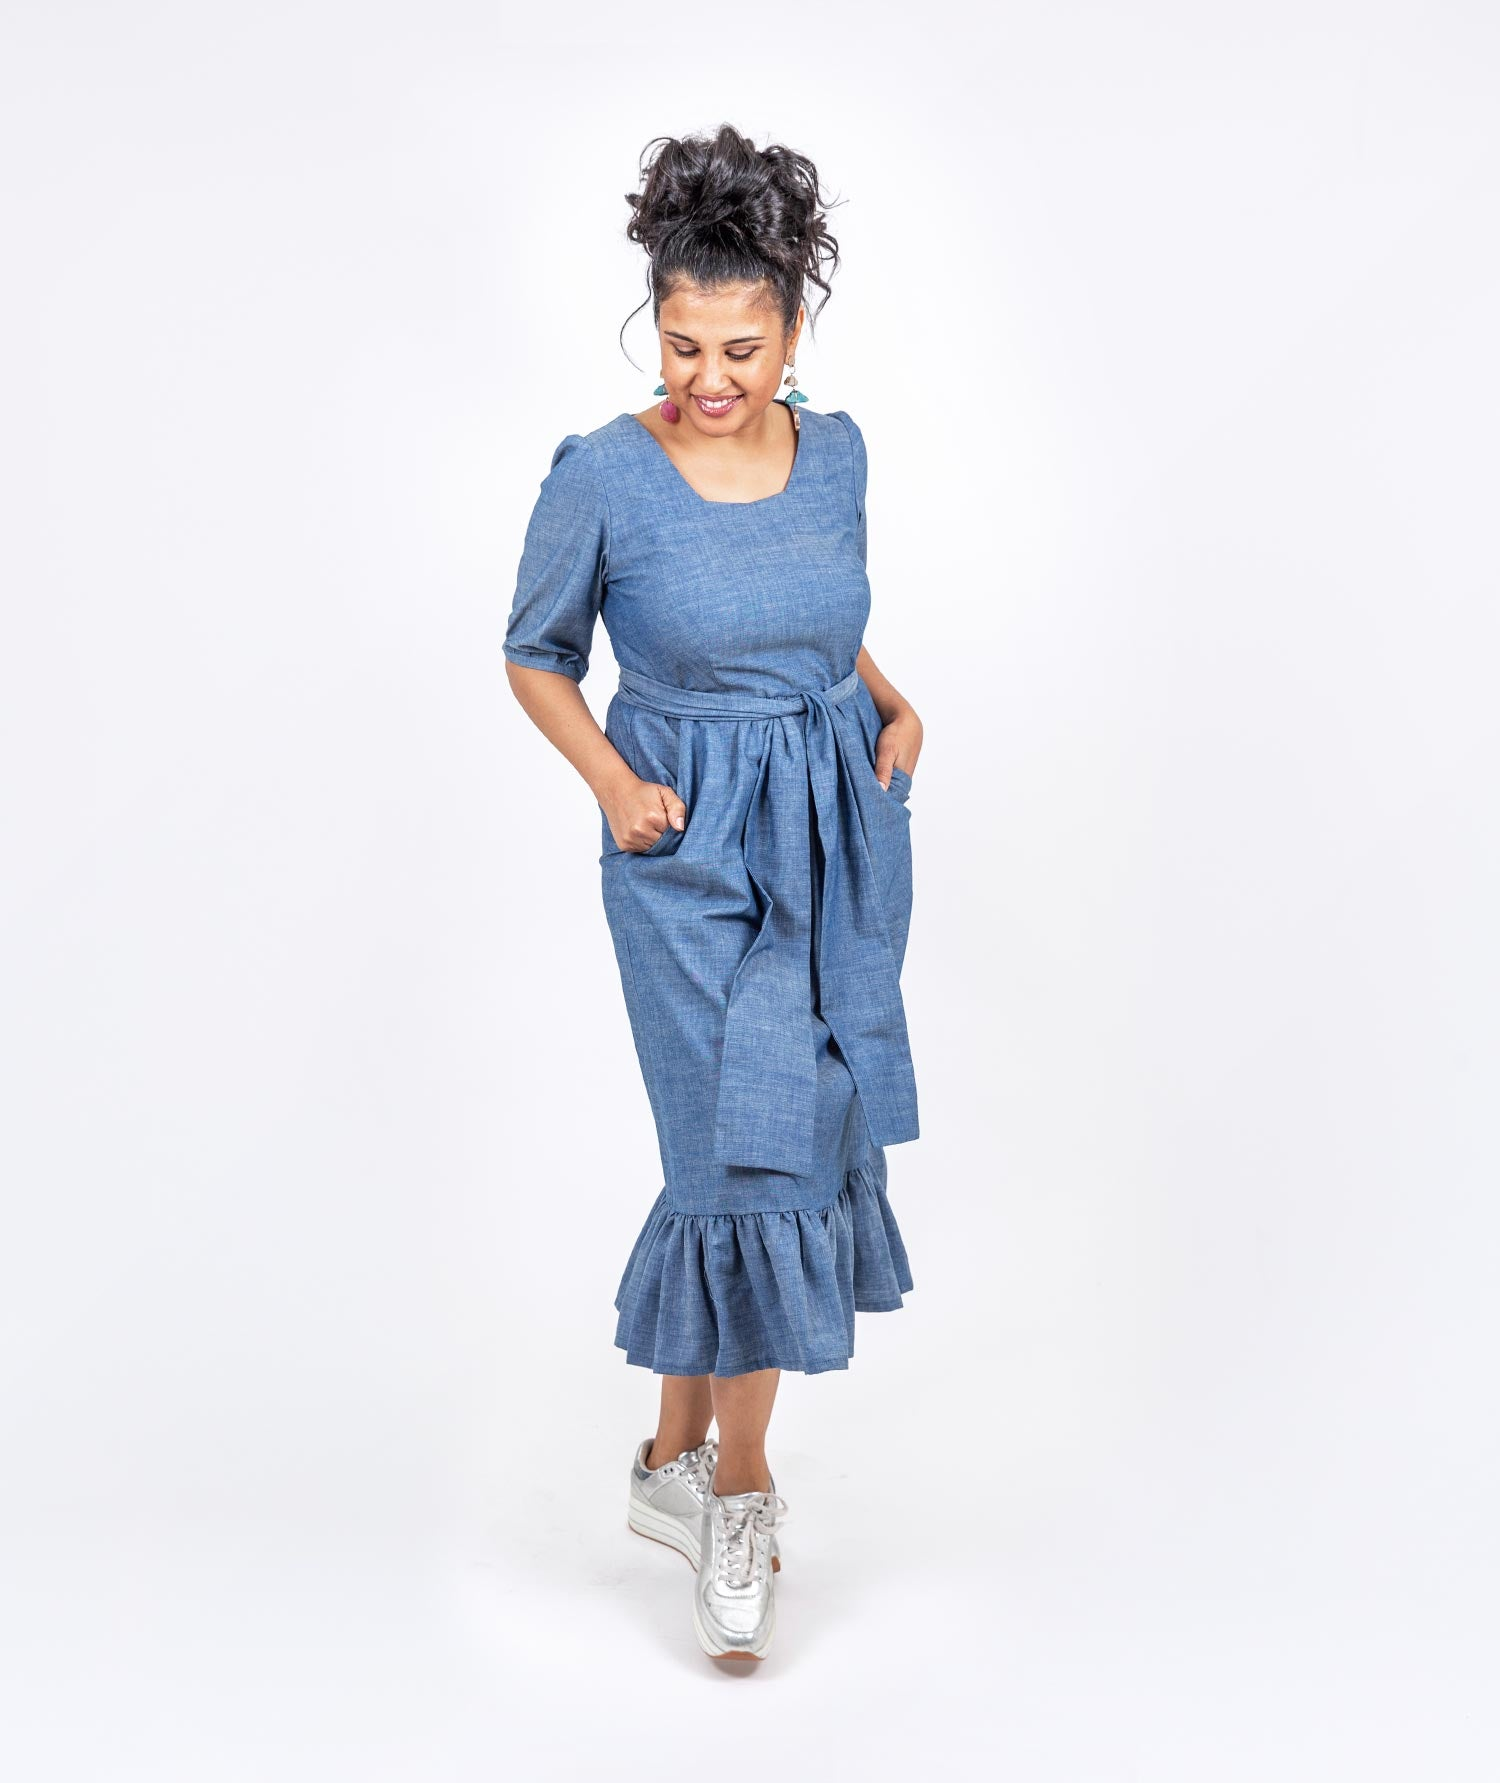 Florish Chambray Dress by Holi Boli